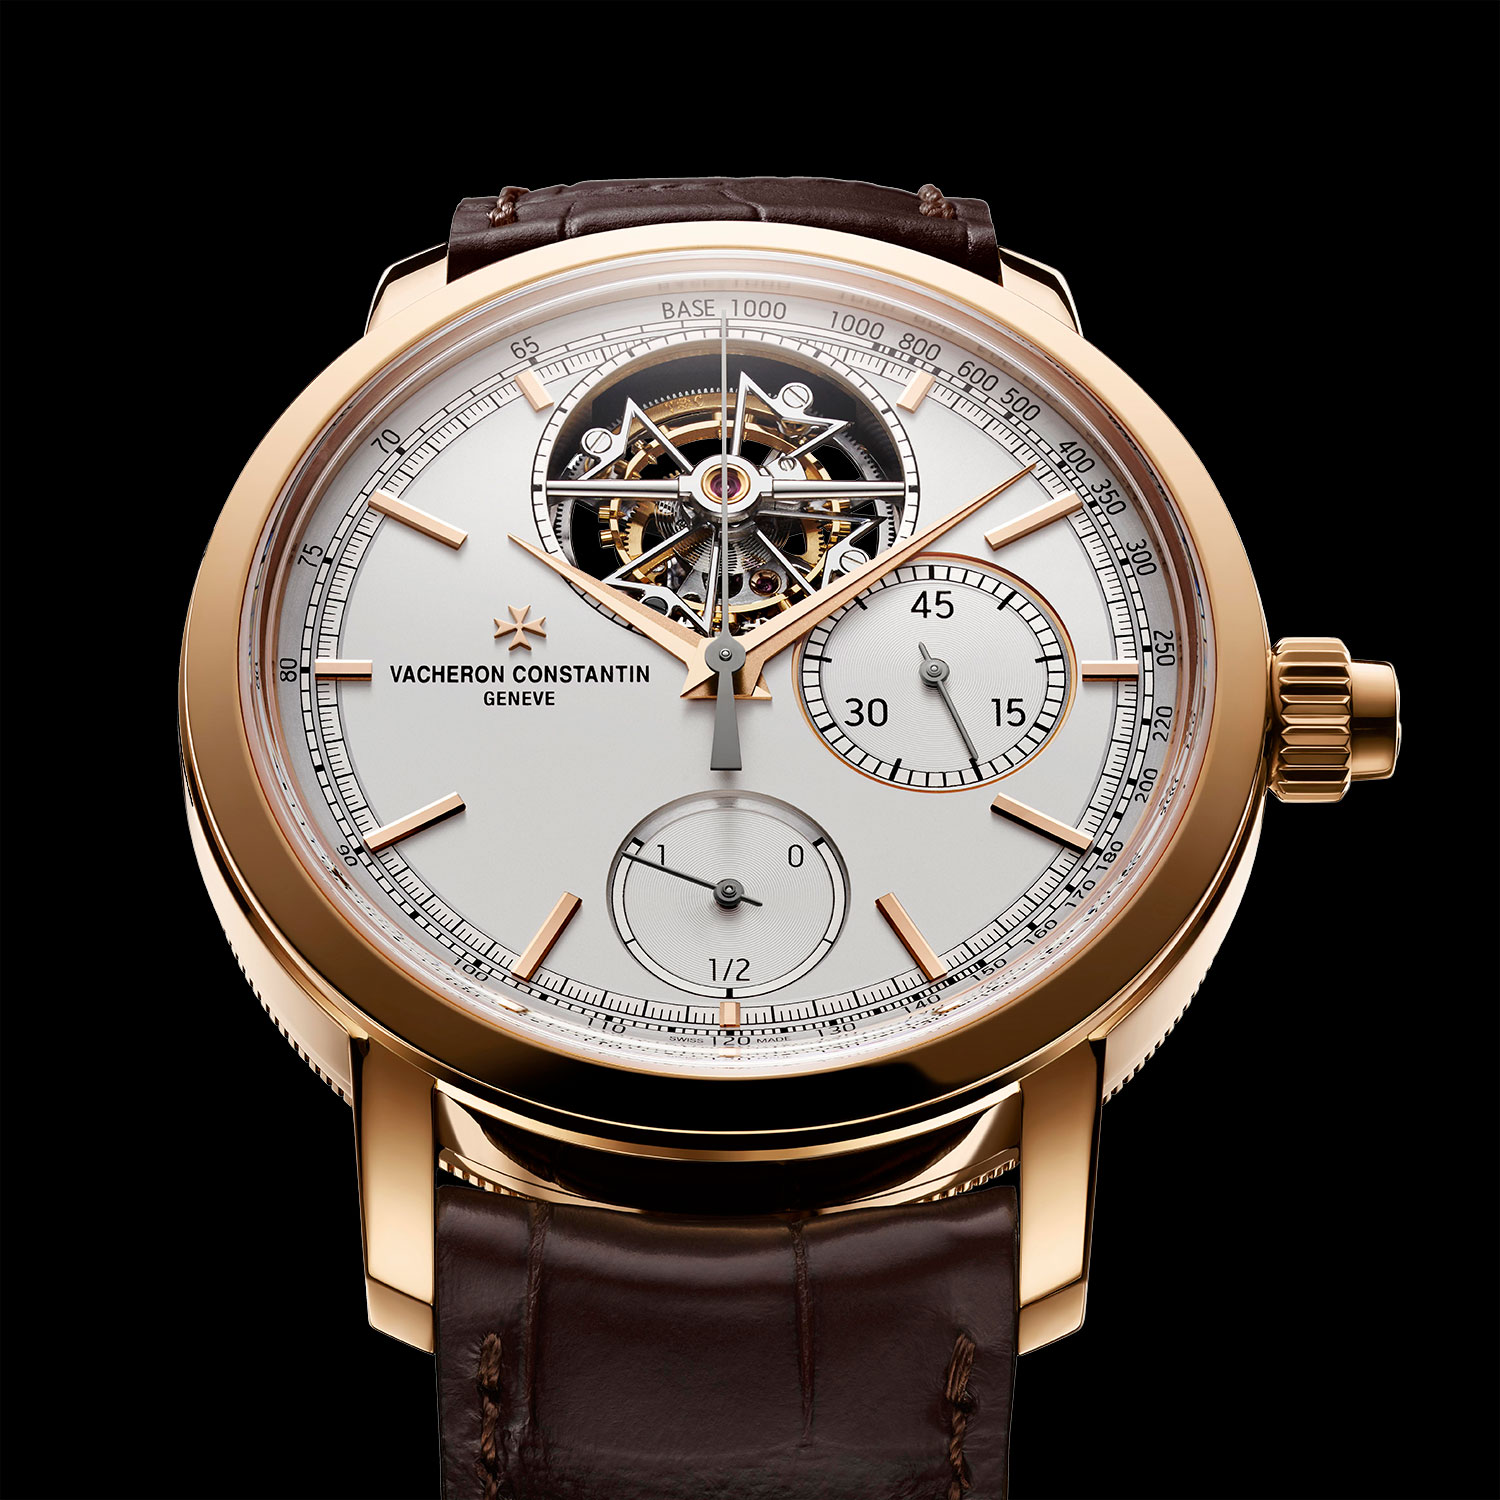 Vacheron Constantin Traditionnelle Chronograph Tourbillon